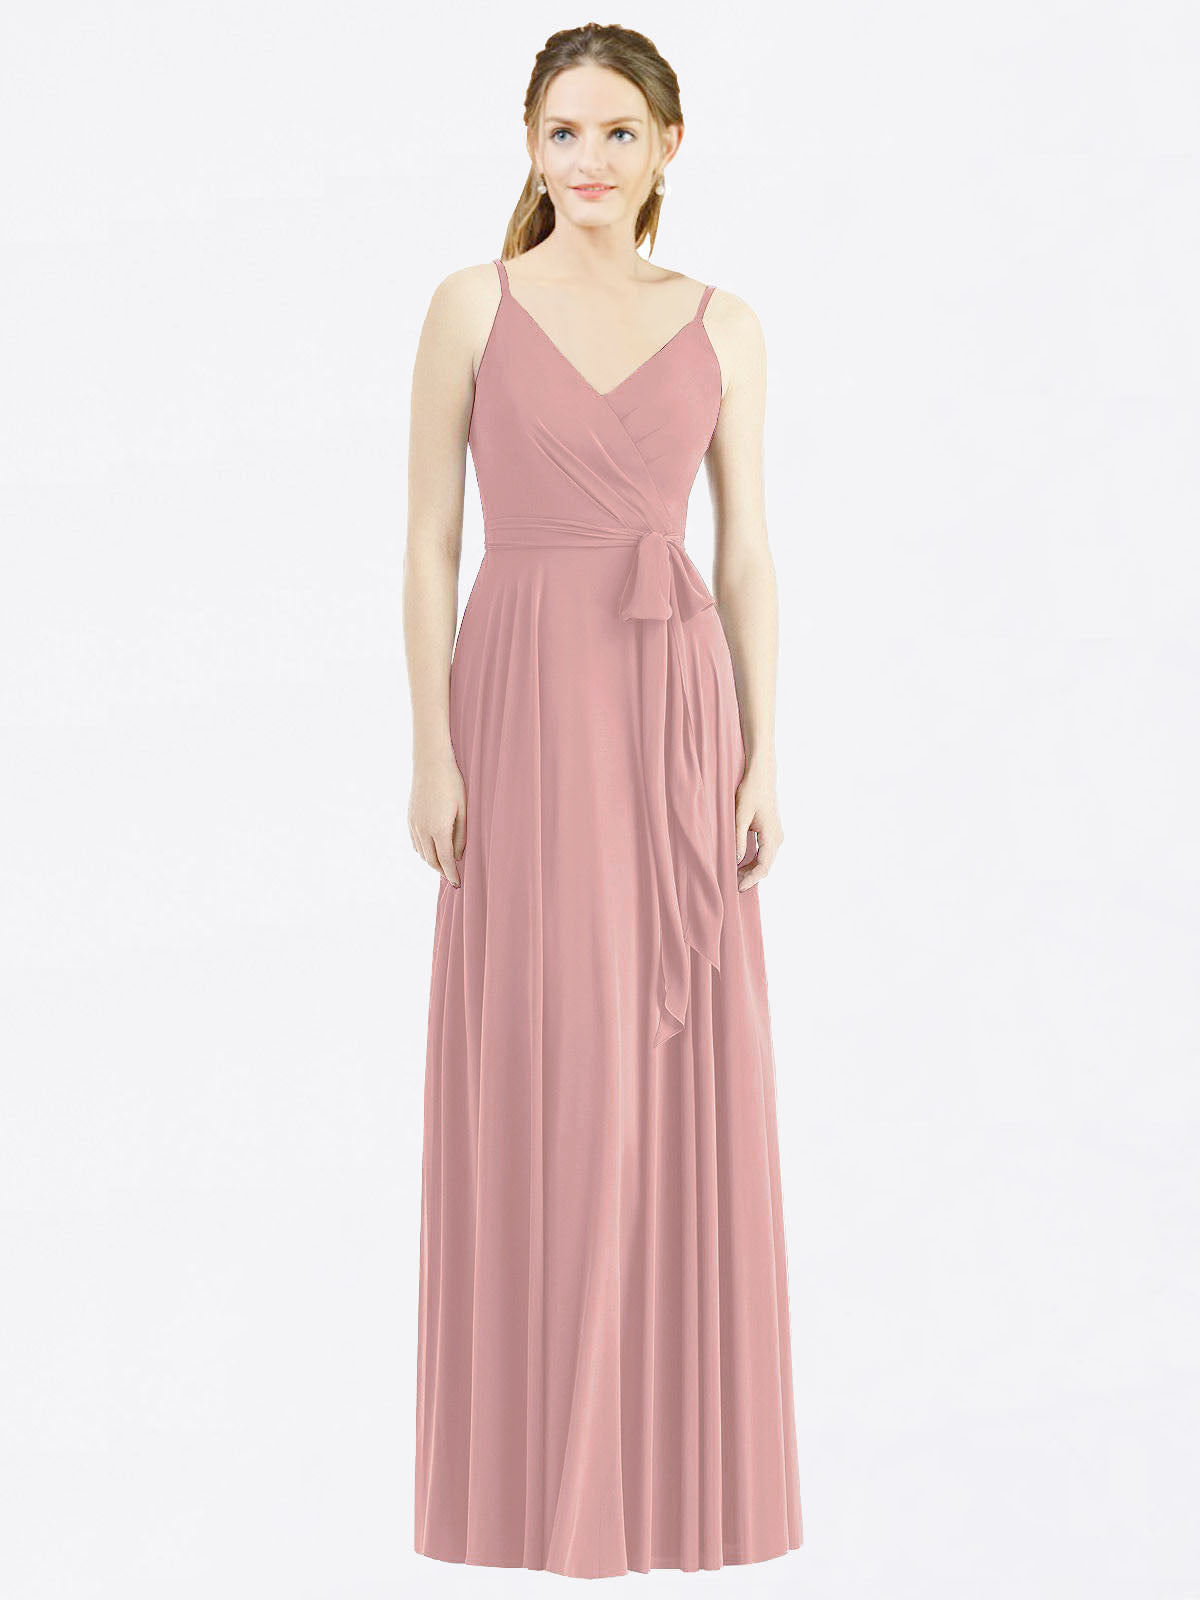 Long A-Line Spaghetti Straps, V-Neck Sleeveless Dusty Pink Chiffon Bridesmaid Dress Madilyn